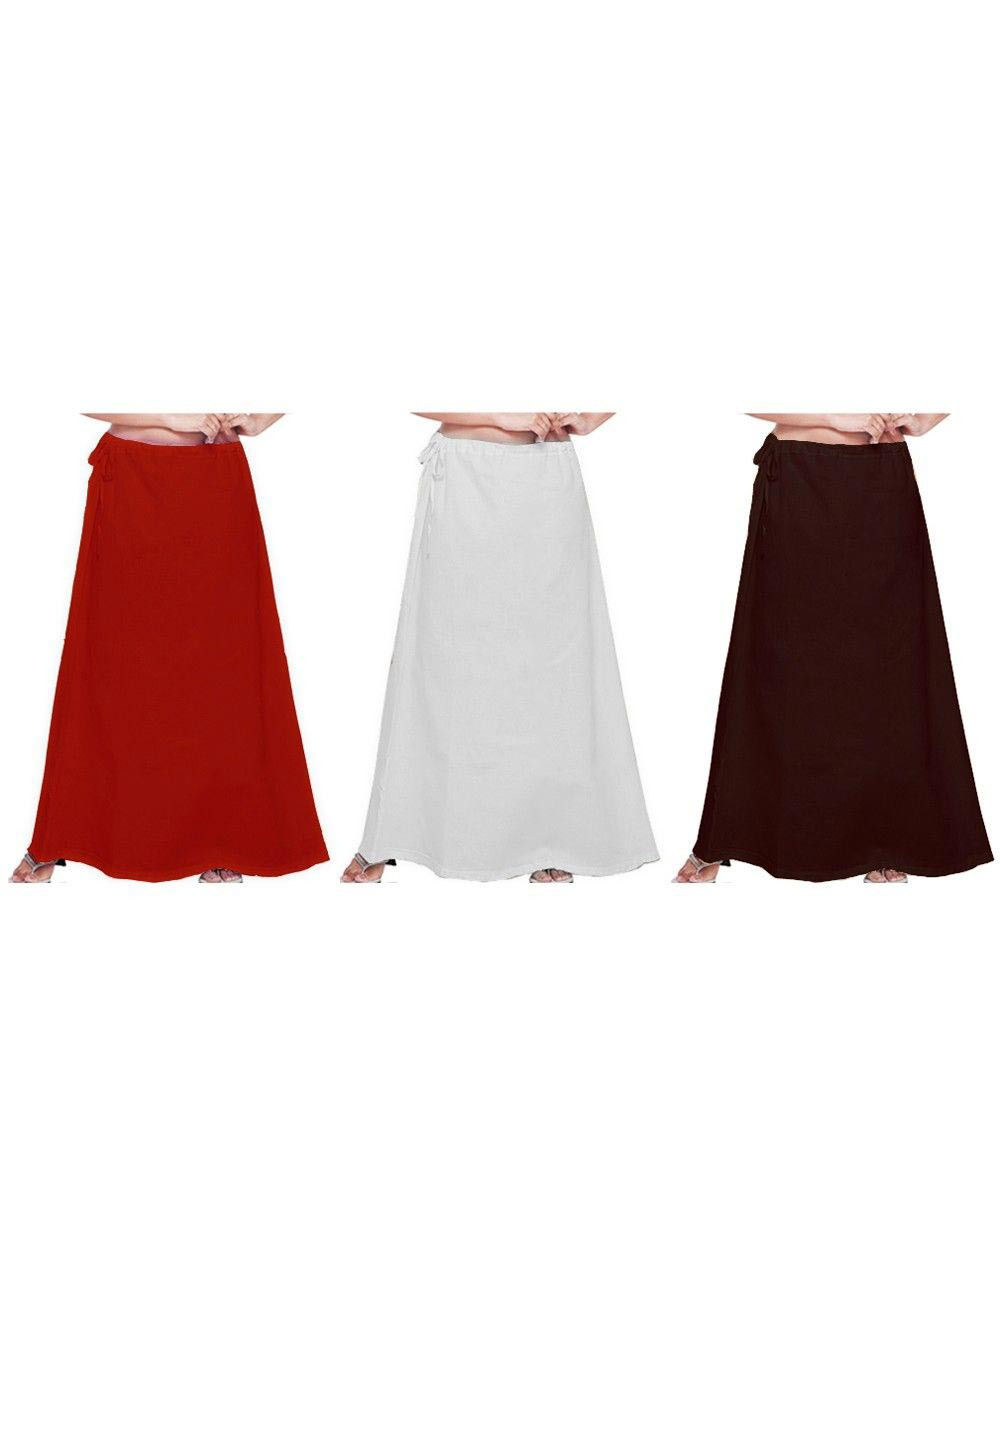 Combo Set Cotton Petticoat in Red, White and Brown